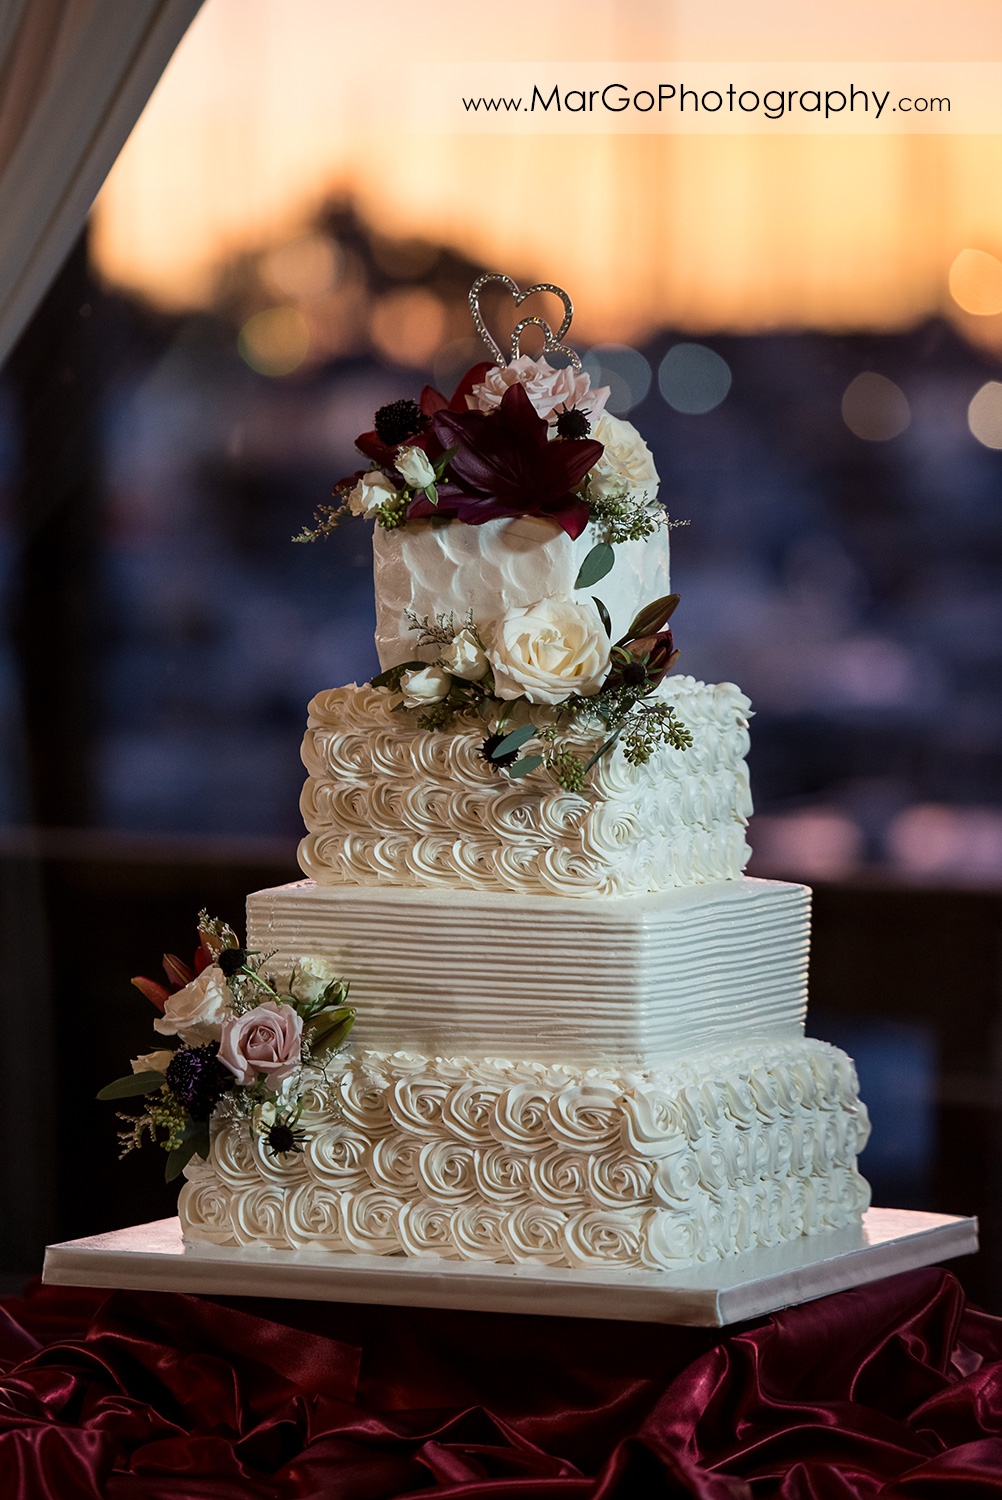 wedding cake decorated with roses at San Diego Mission Bay Park